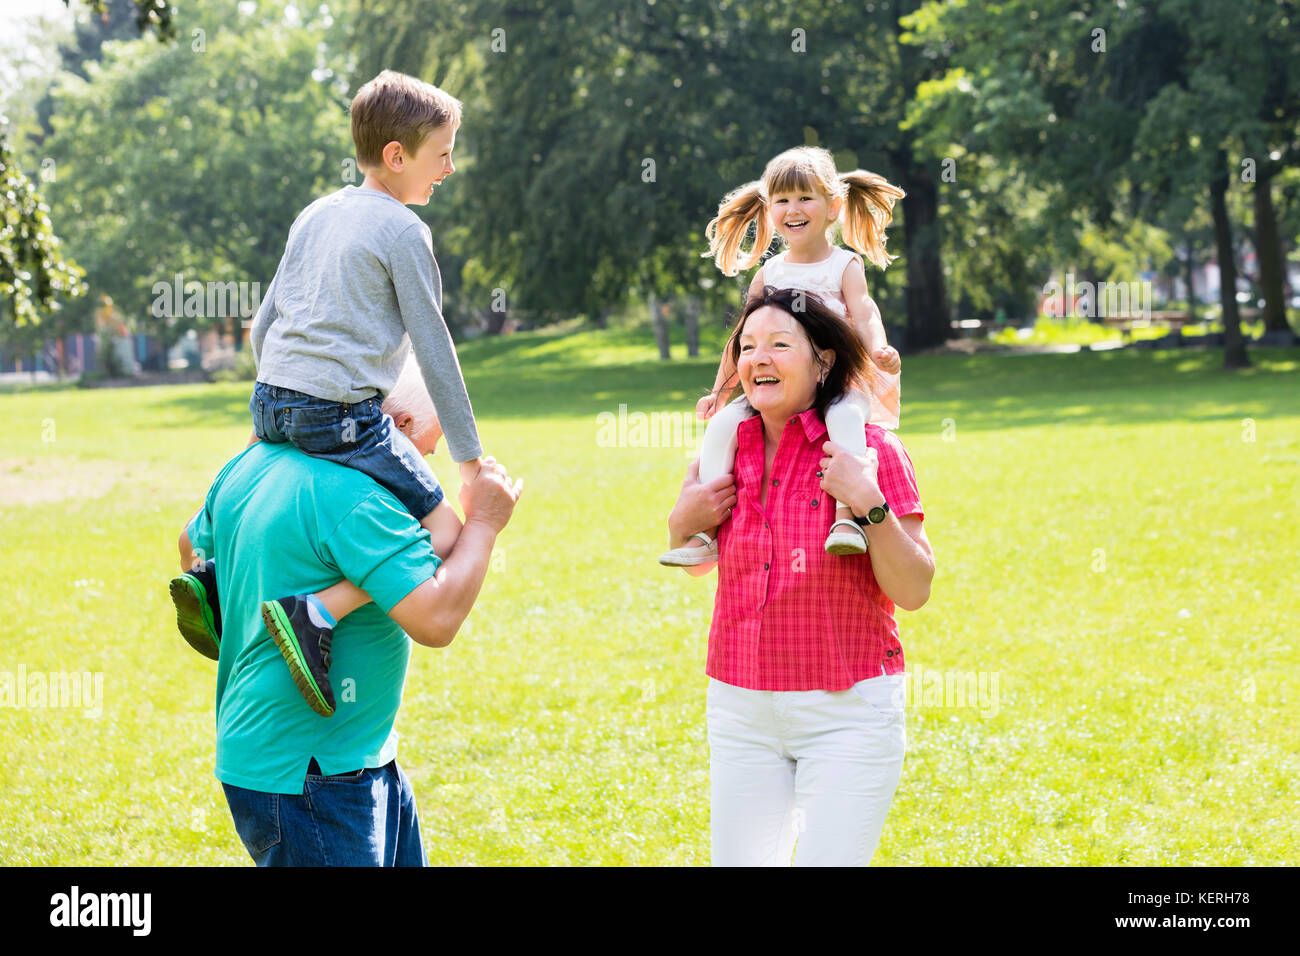 Happy Old Grandparents Giving Piggyback Ride To Their Grandchildren In Park - Stock Image